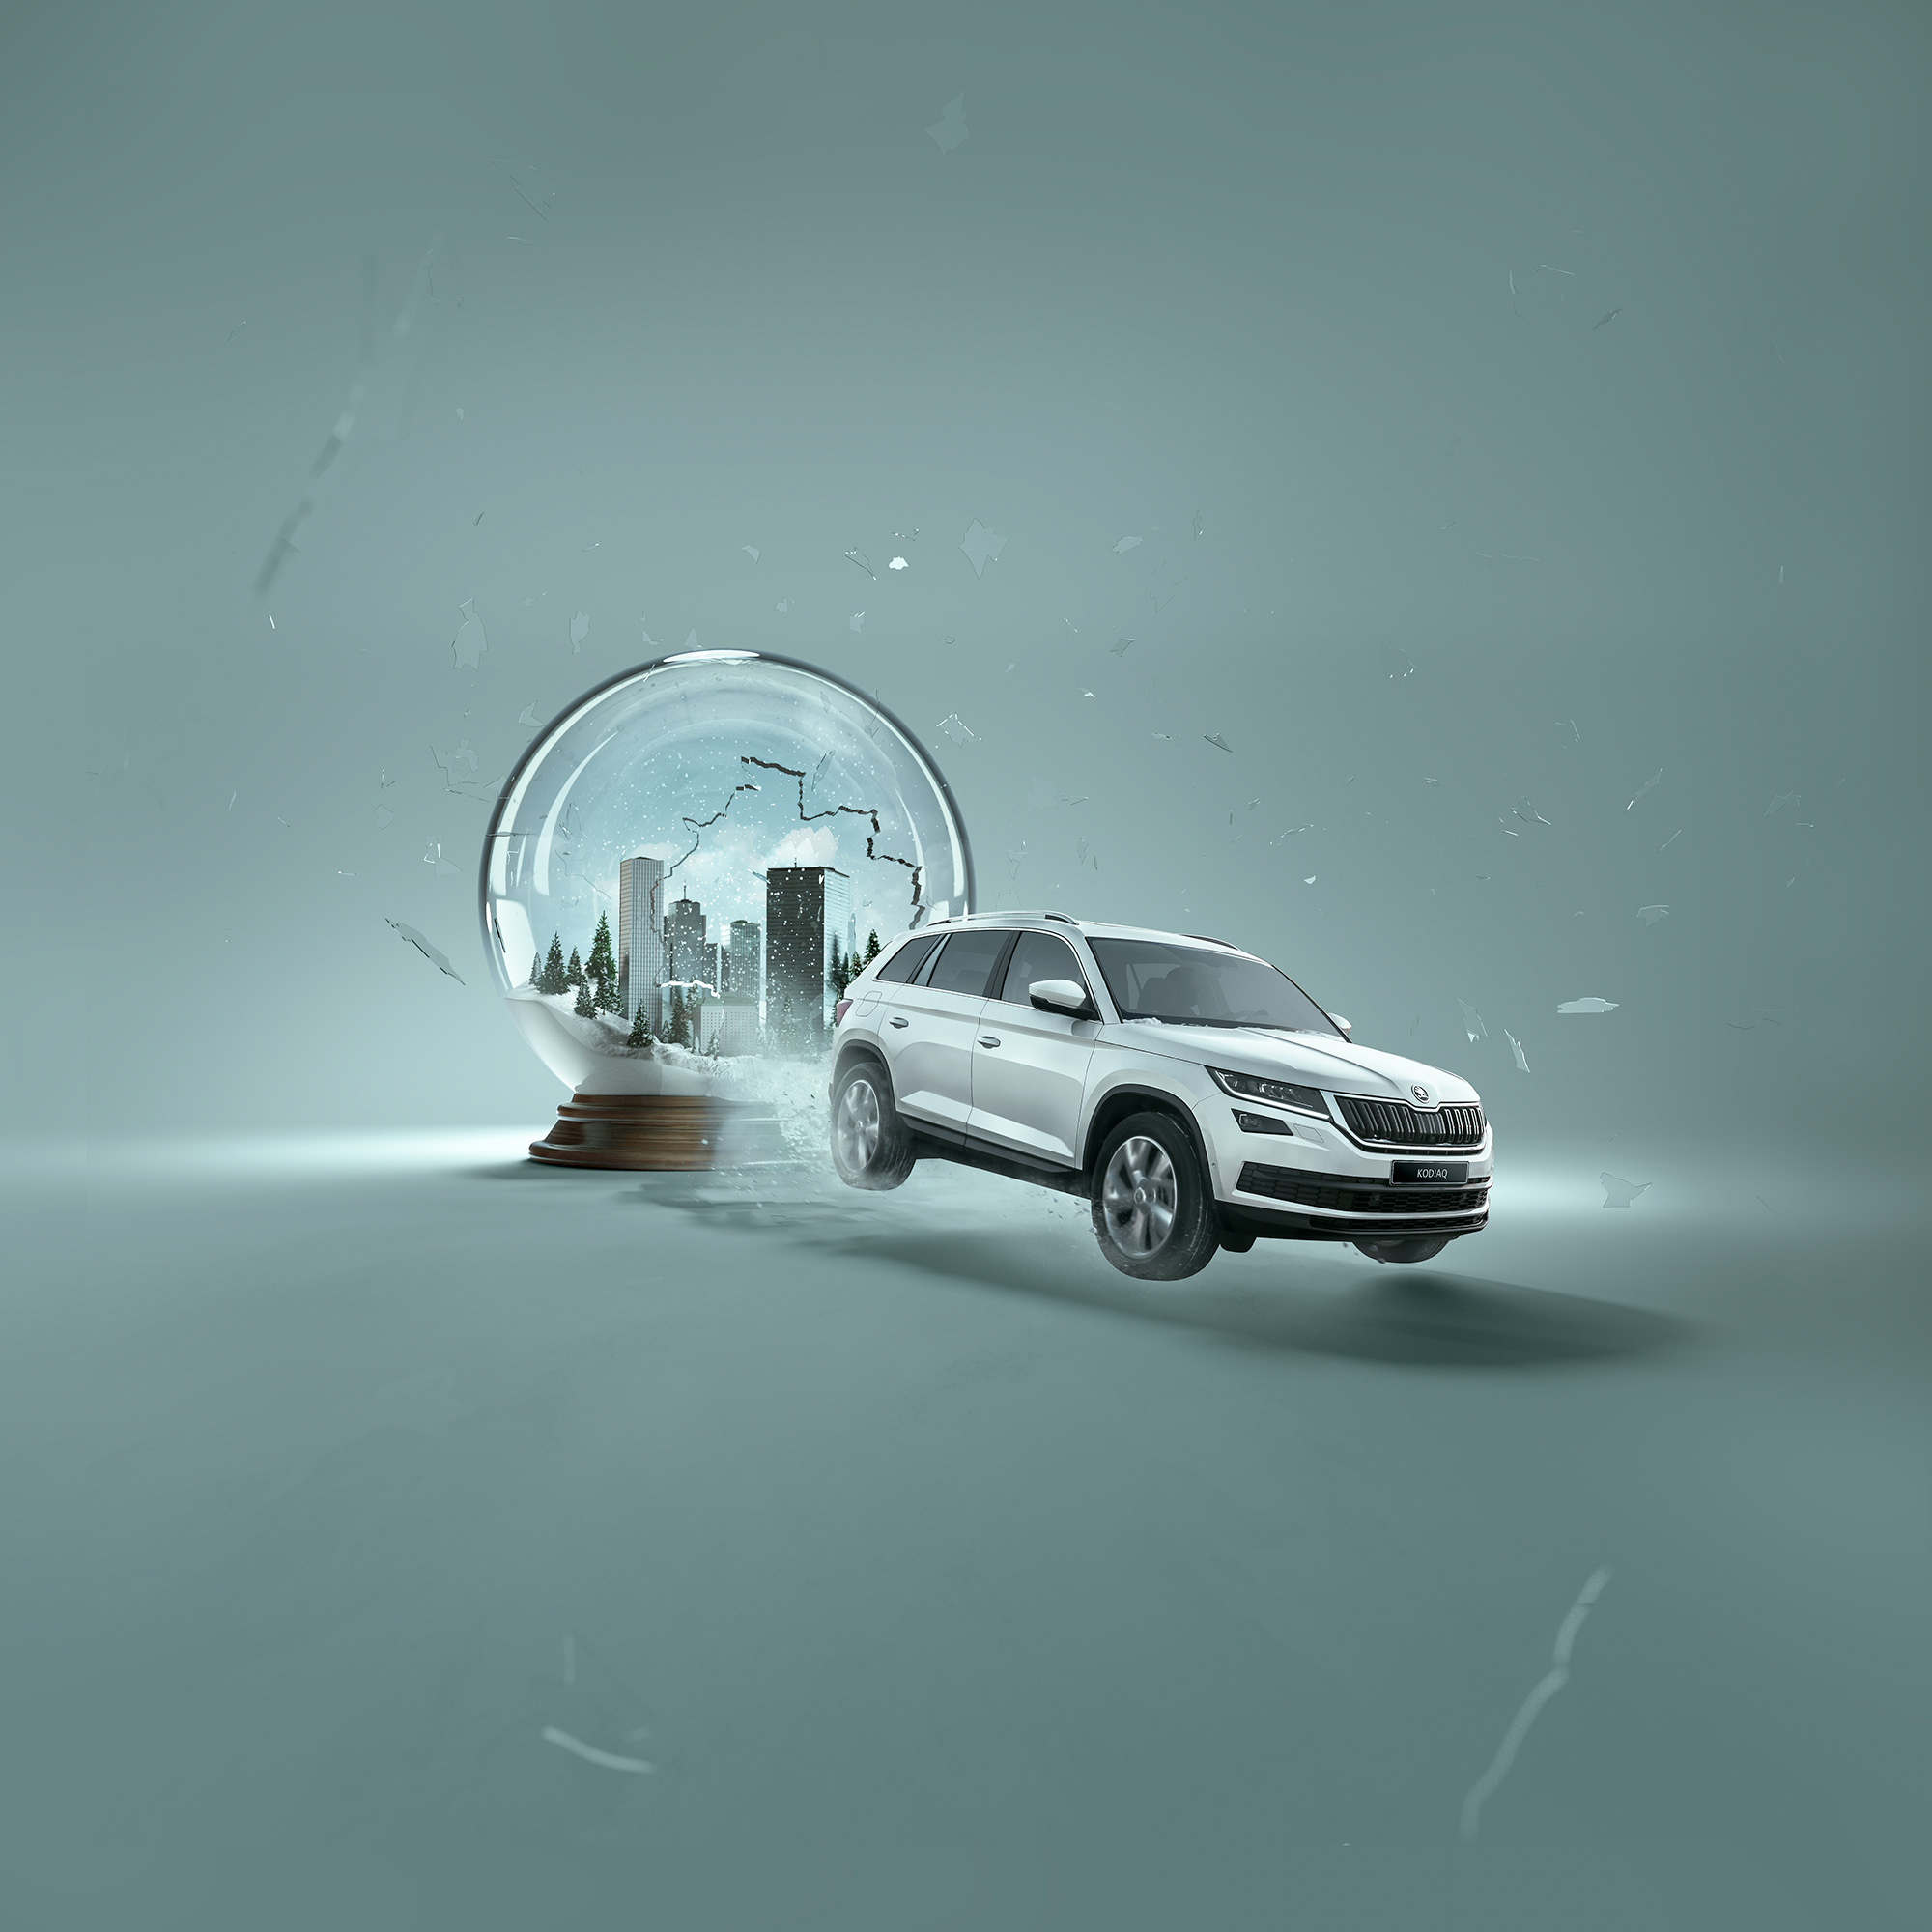 Claudio_errico_digital_artist_art_cgi_cg_3d_lighting_photography_integration_art_direction_mirror__skoda_winter_process2